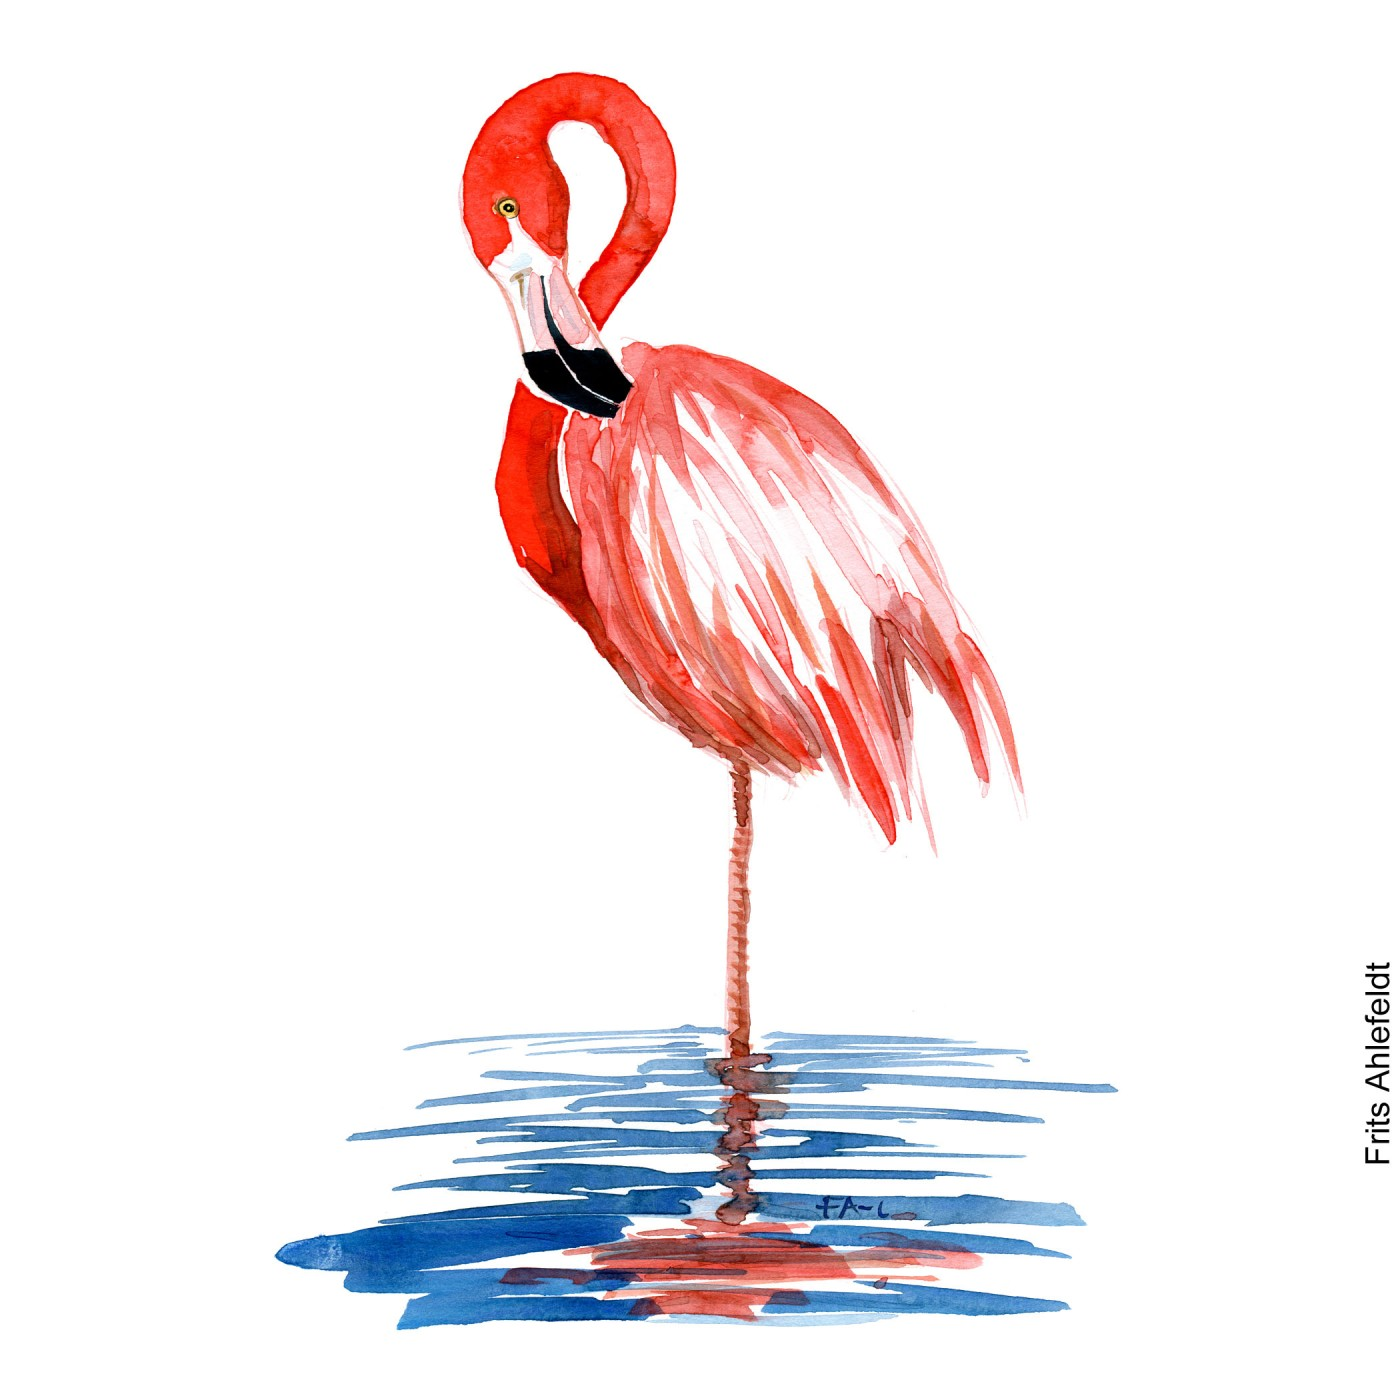 Watercolor illustration of flamingo watercolour by Frits Ahlefeldt